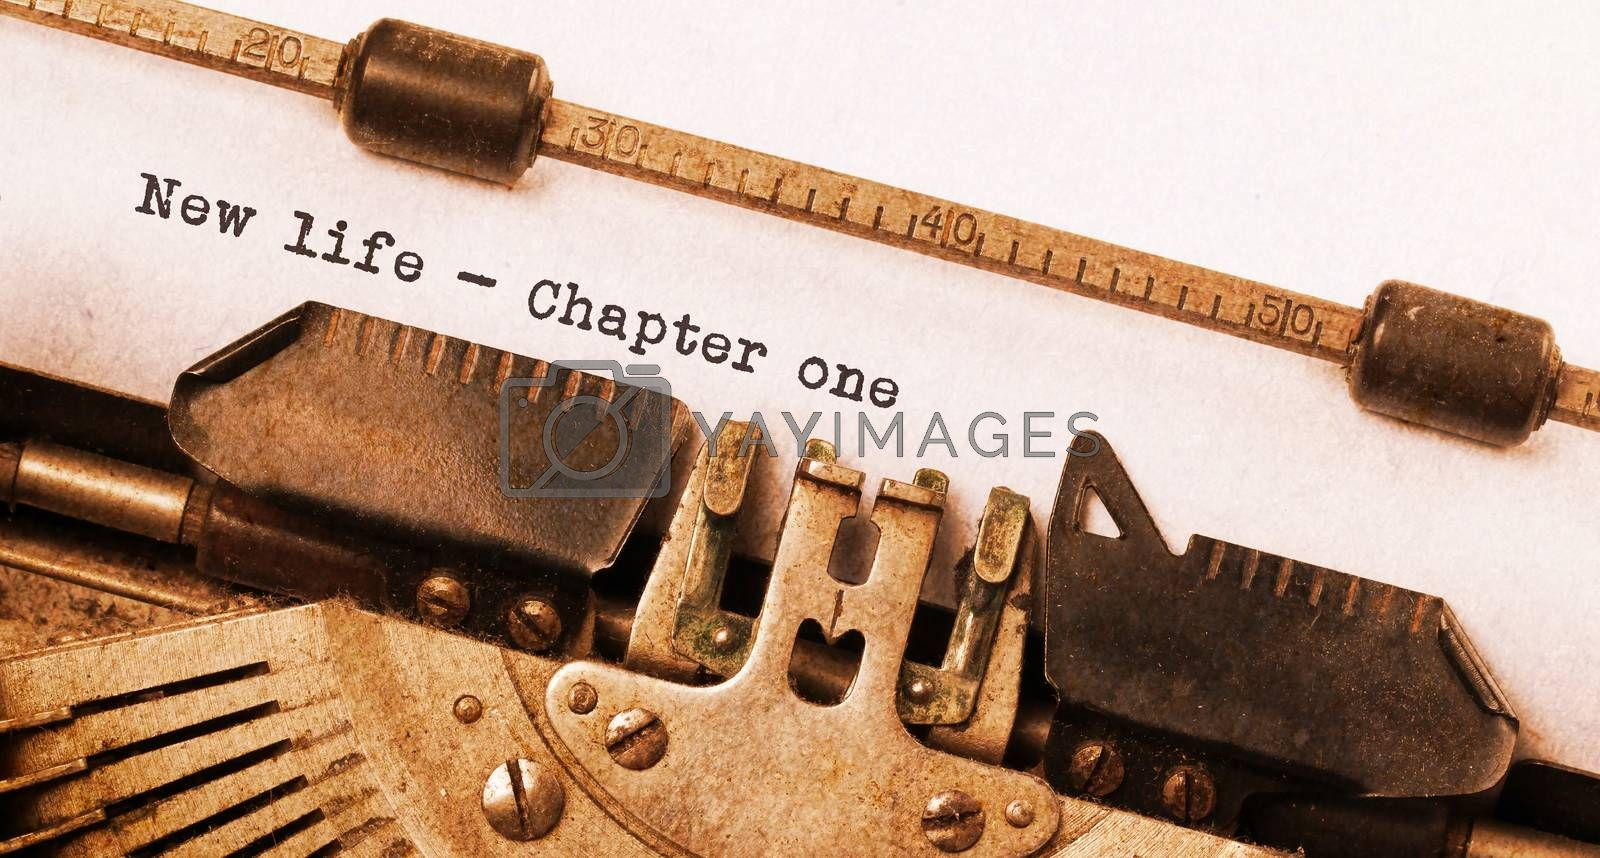 Vintage typewriter, old rusty, warm yellow filter, new life chapter 1